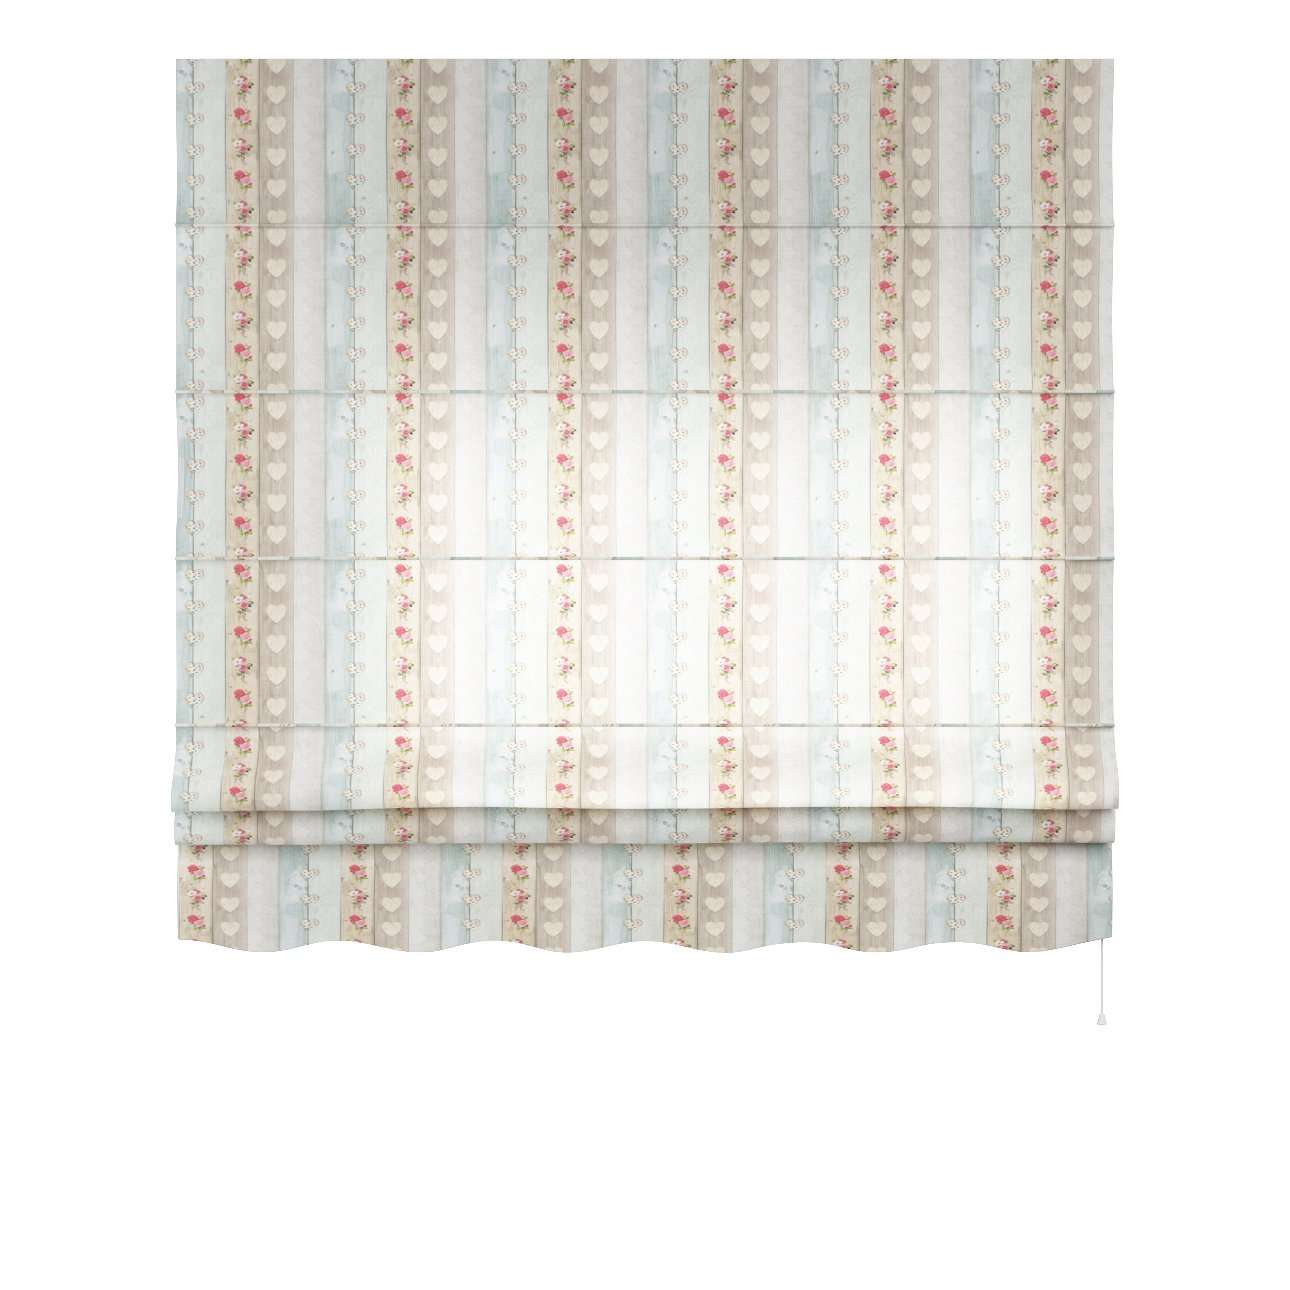 Florence roman blind  80 × 170 cm (31.5 × 67 inch) in collection Ashley, fabric: 140-20